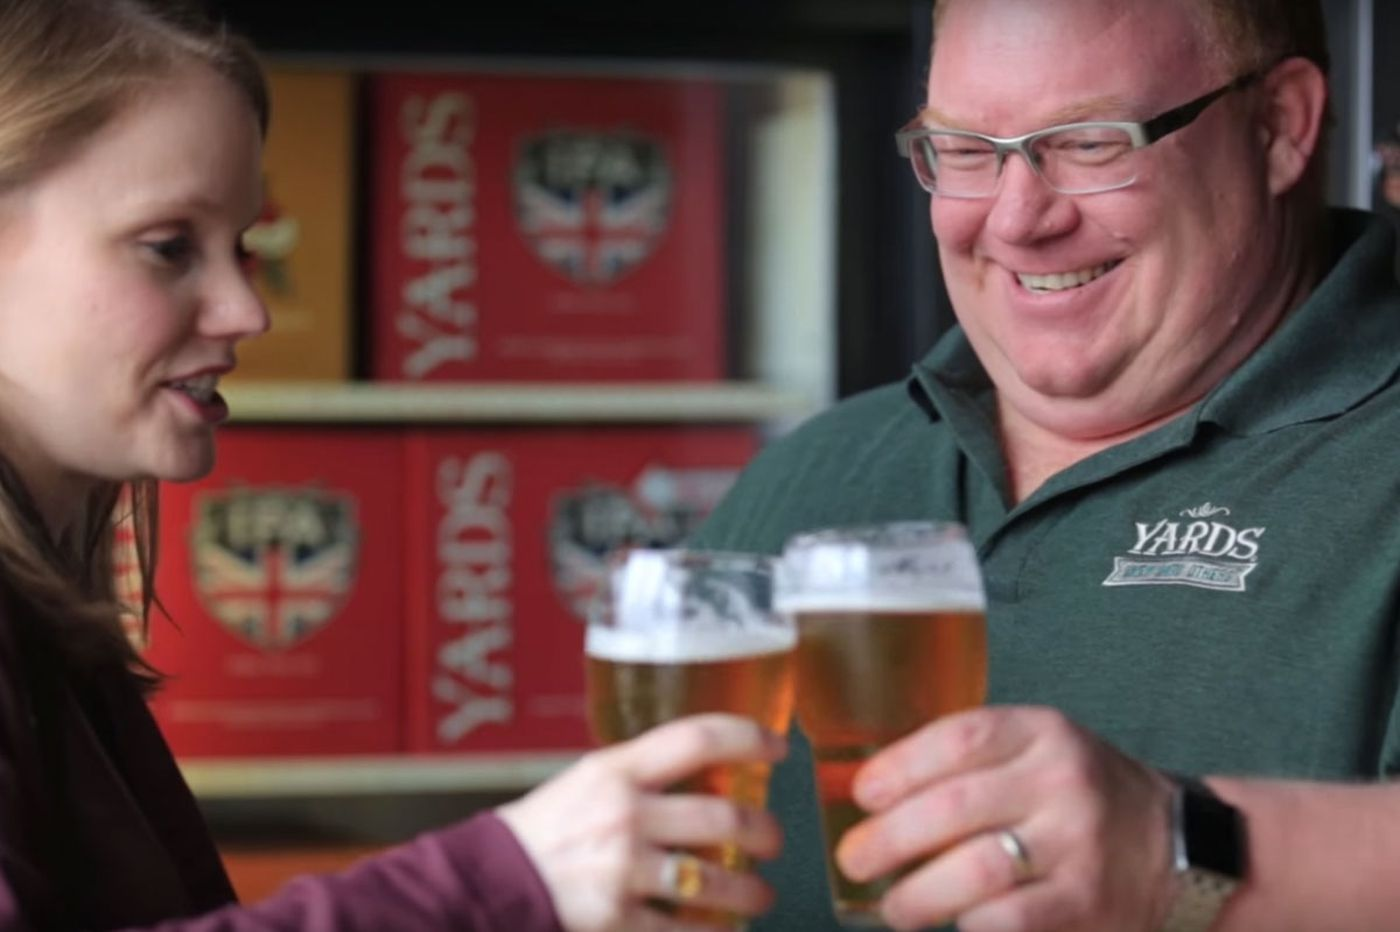 Yards' 'Good Fight' shows the brewery's softer side